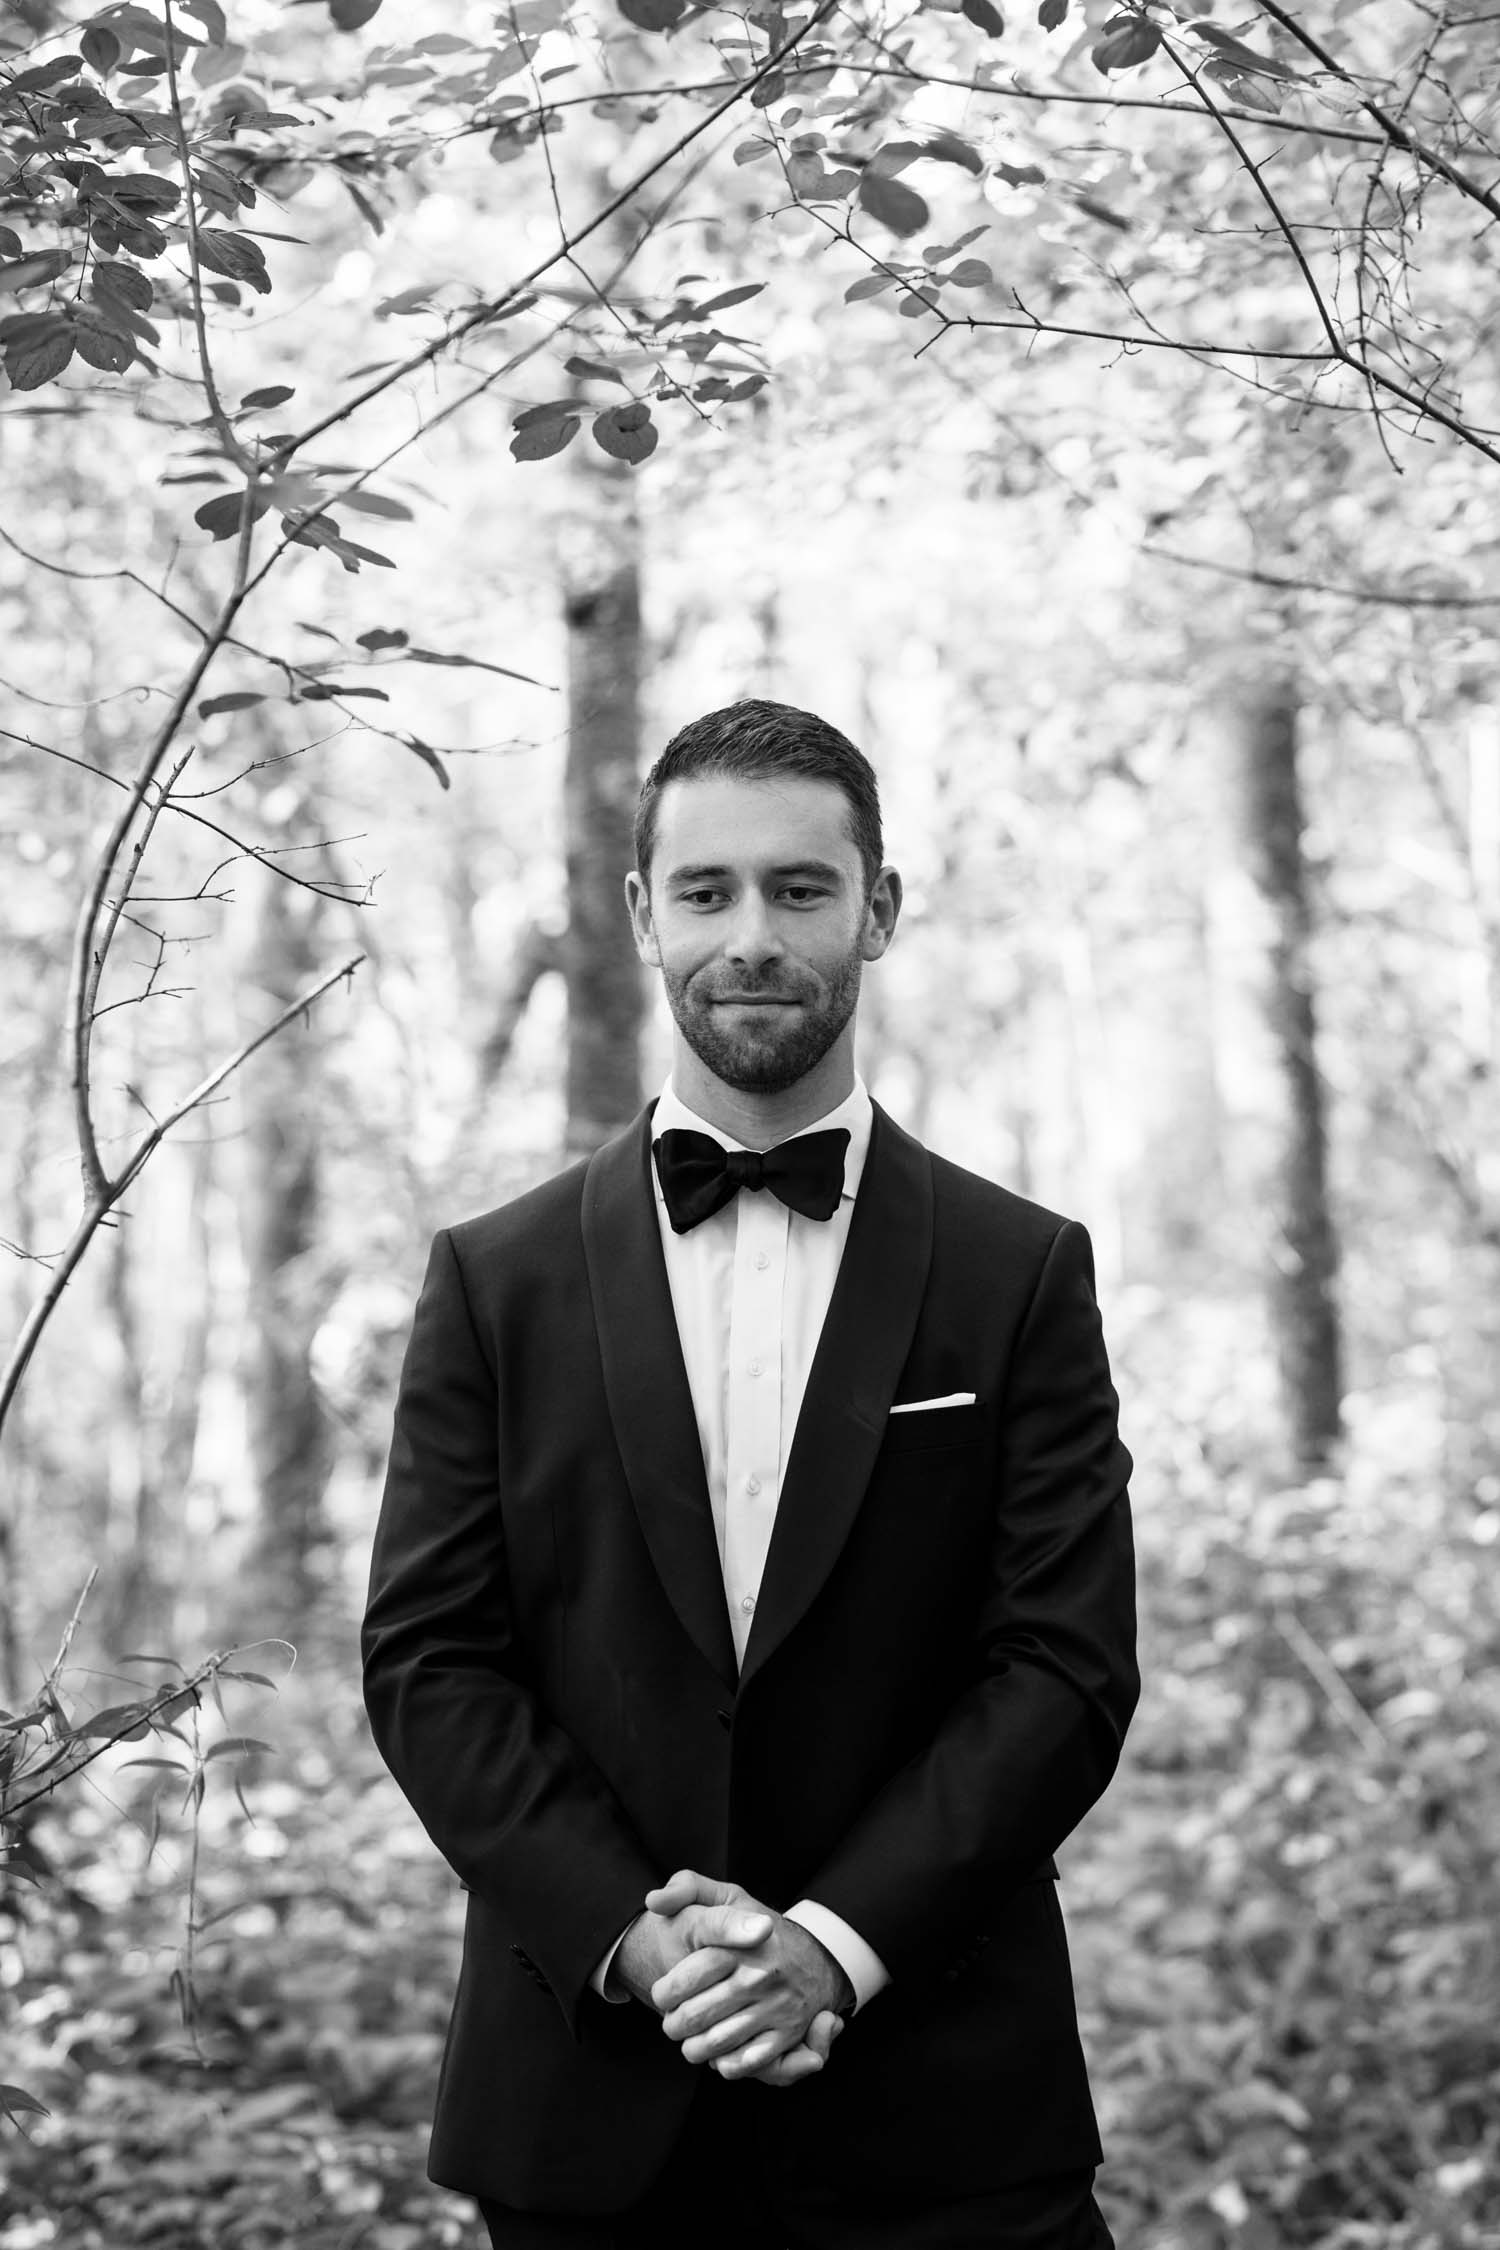 Groom waiting for his bride and their first look reveal in the forest at Fairy Lake Park in Newmarket